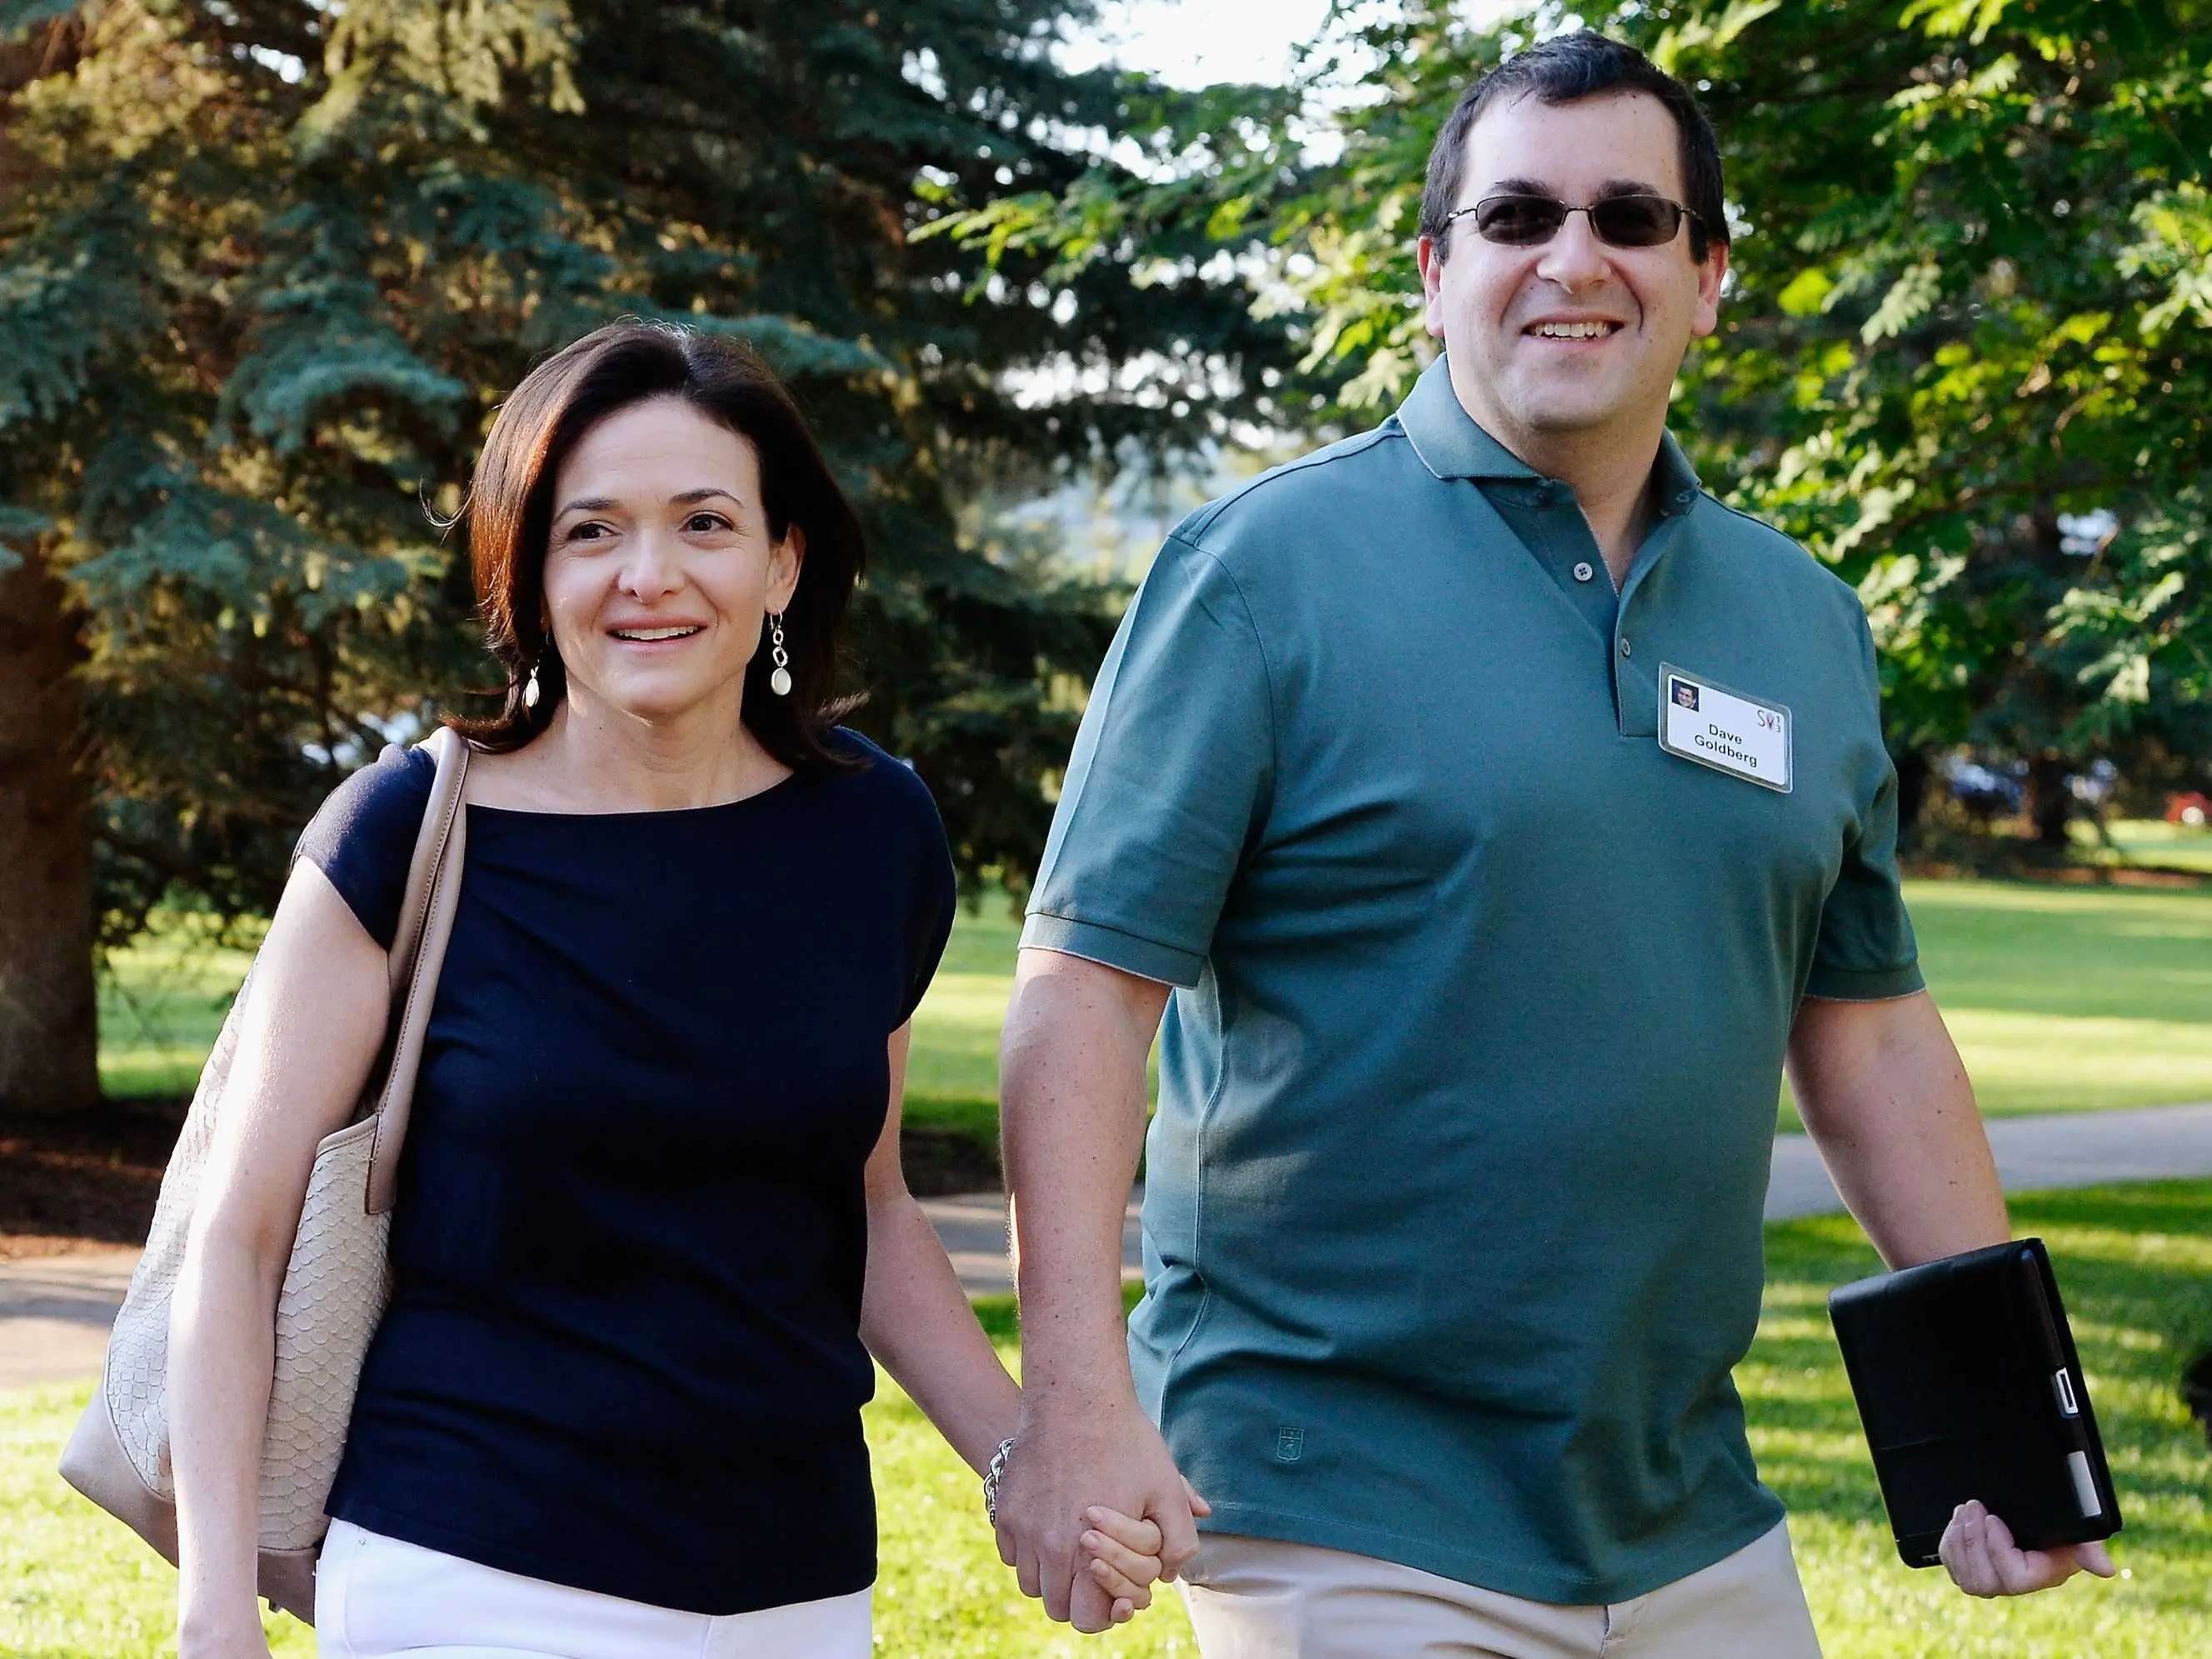 Facebook's Sheryl Sandberg is married to SurveyMonkey CEO Dave Goldberg.